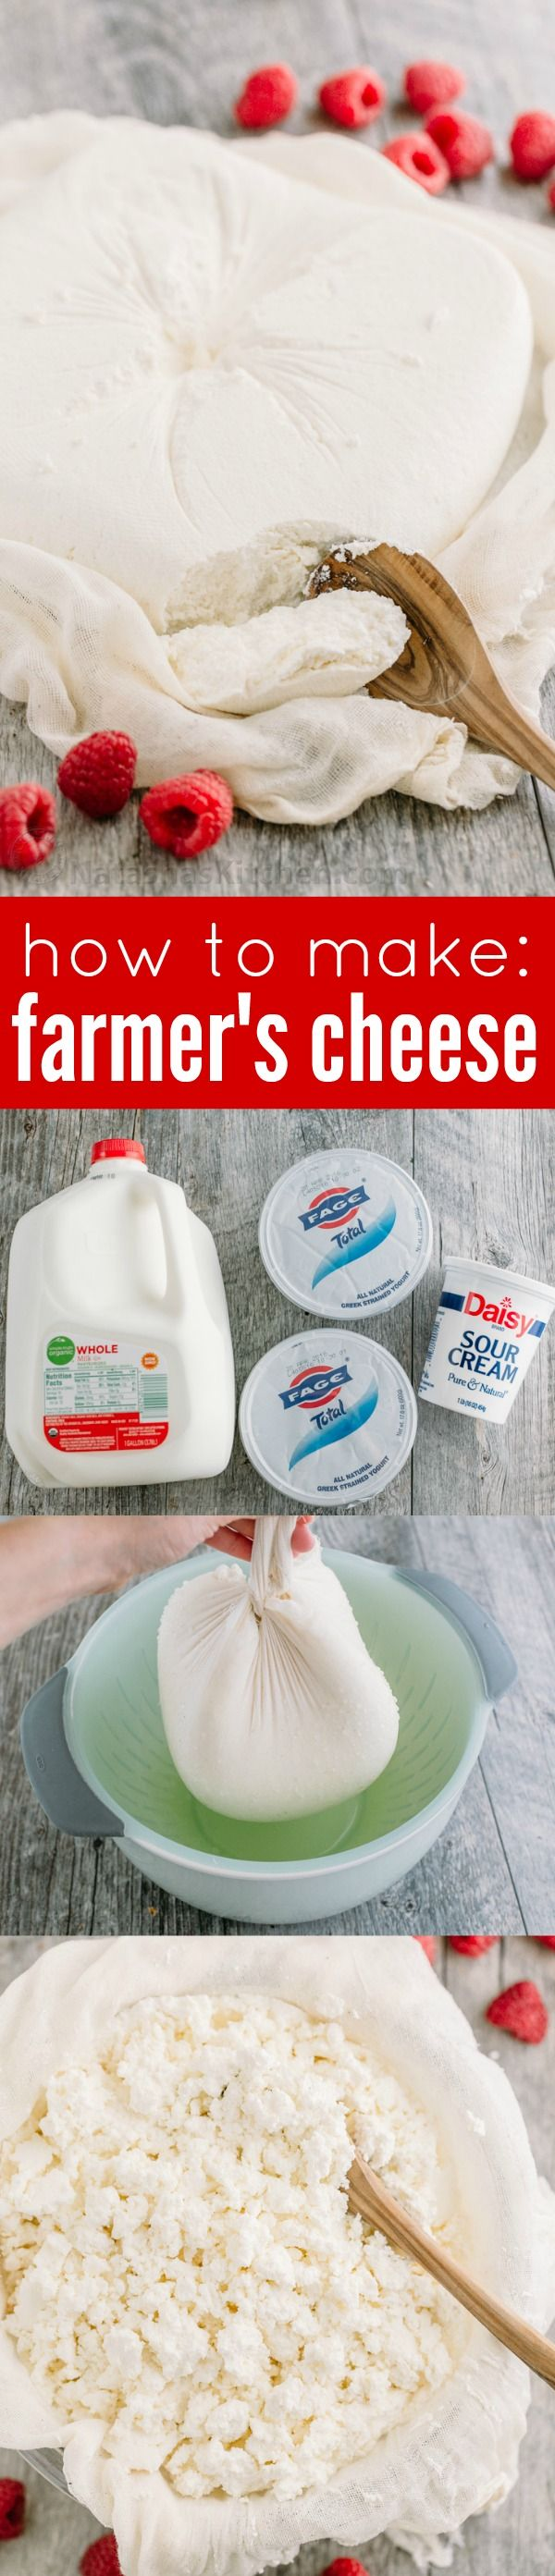 My Mother's method for homemade Farmers cheese (tvorog). Easy to make and much better than store-bought farmer cheese. How to make homemade cheese with step-by-step photos.